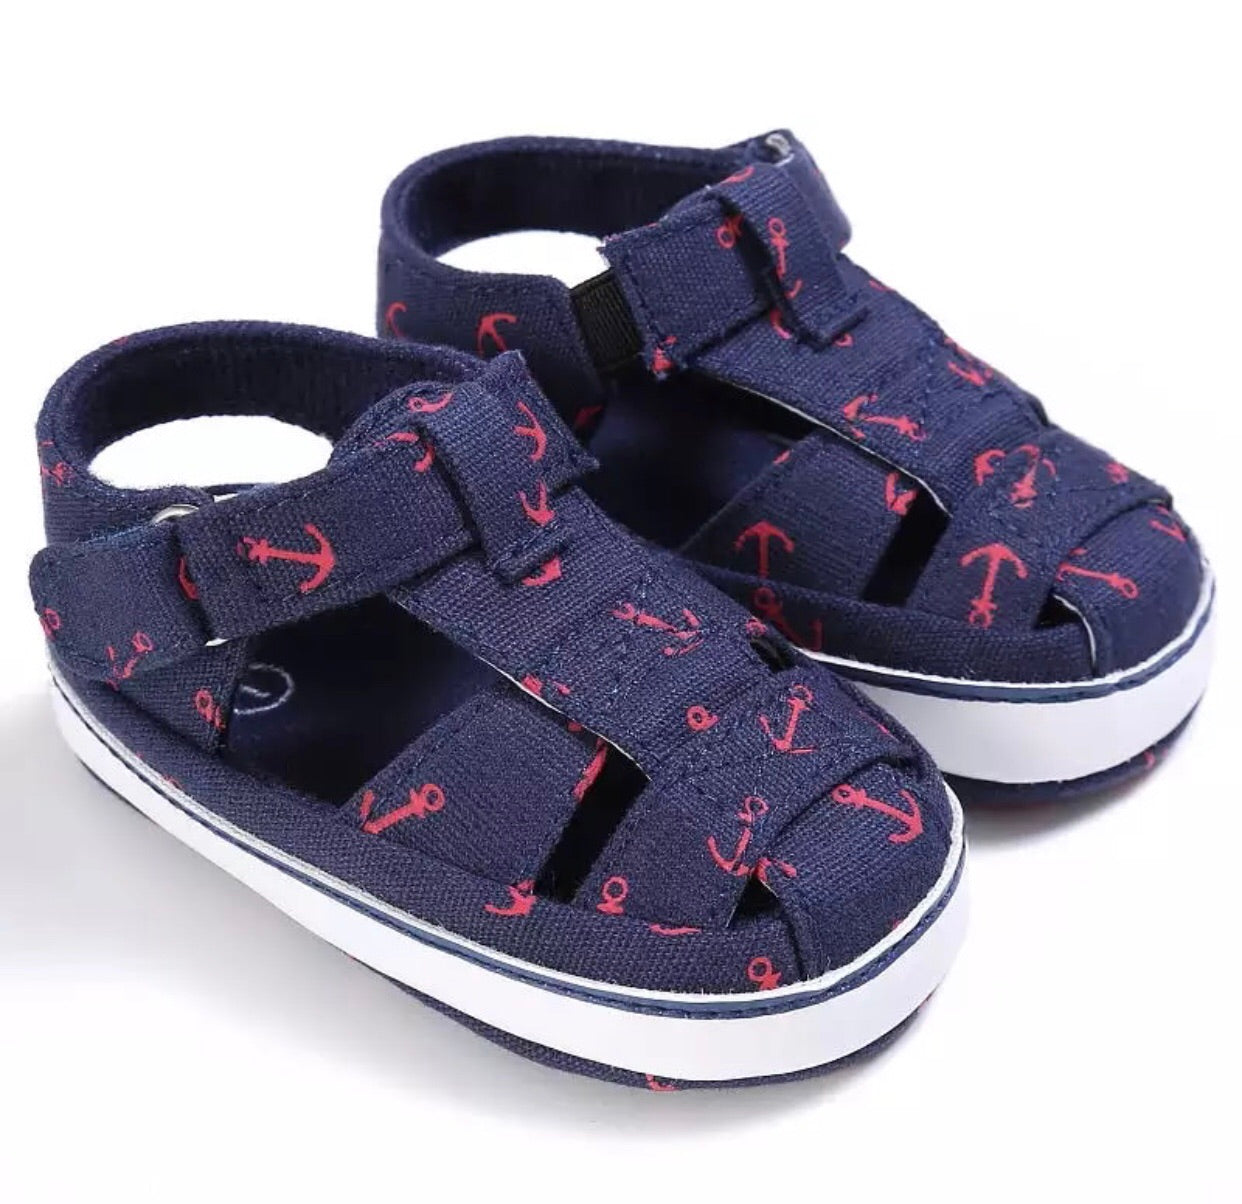 Boys Pre-walker Sandals